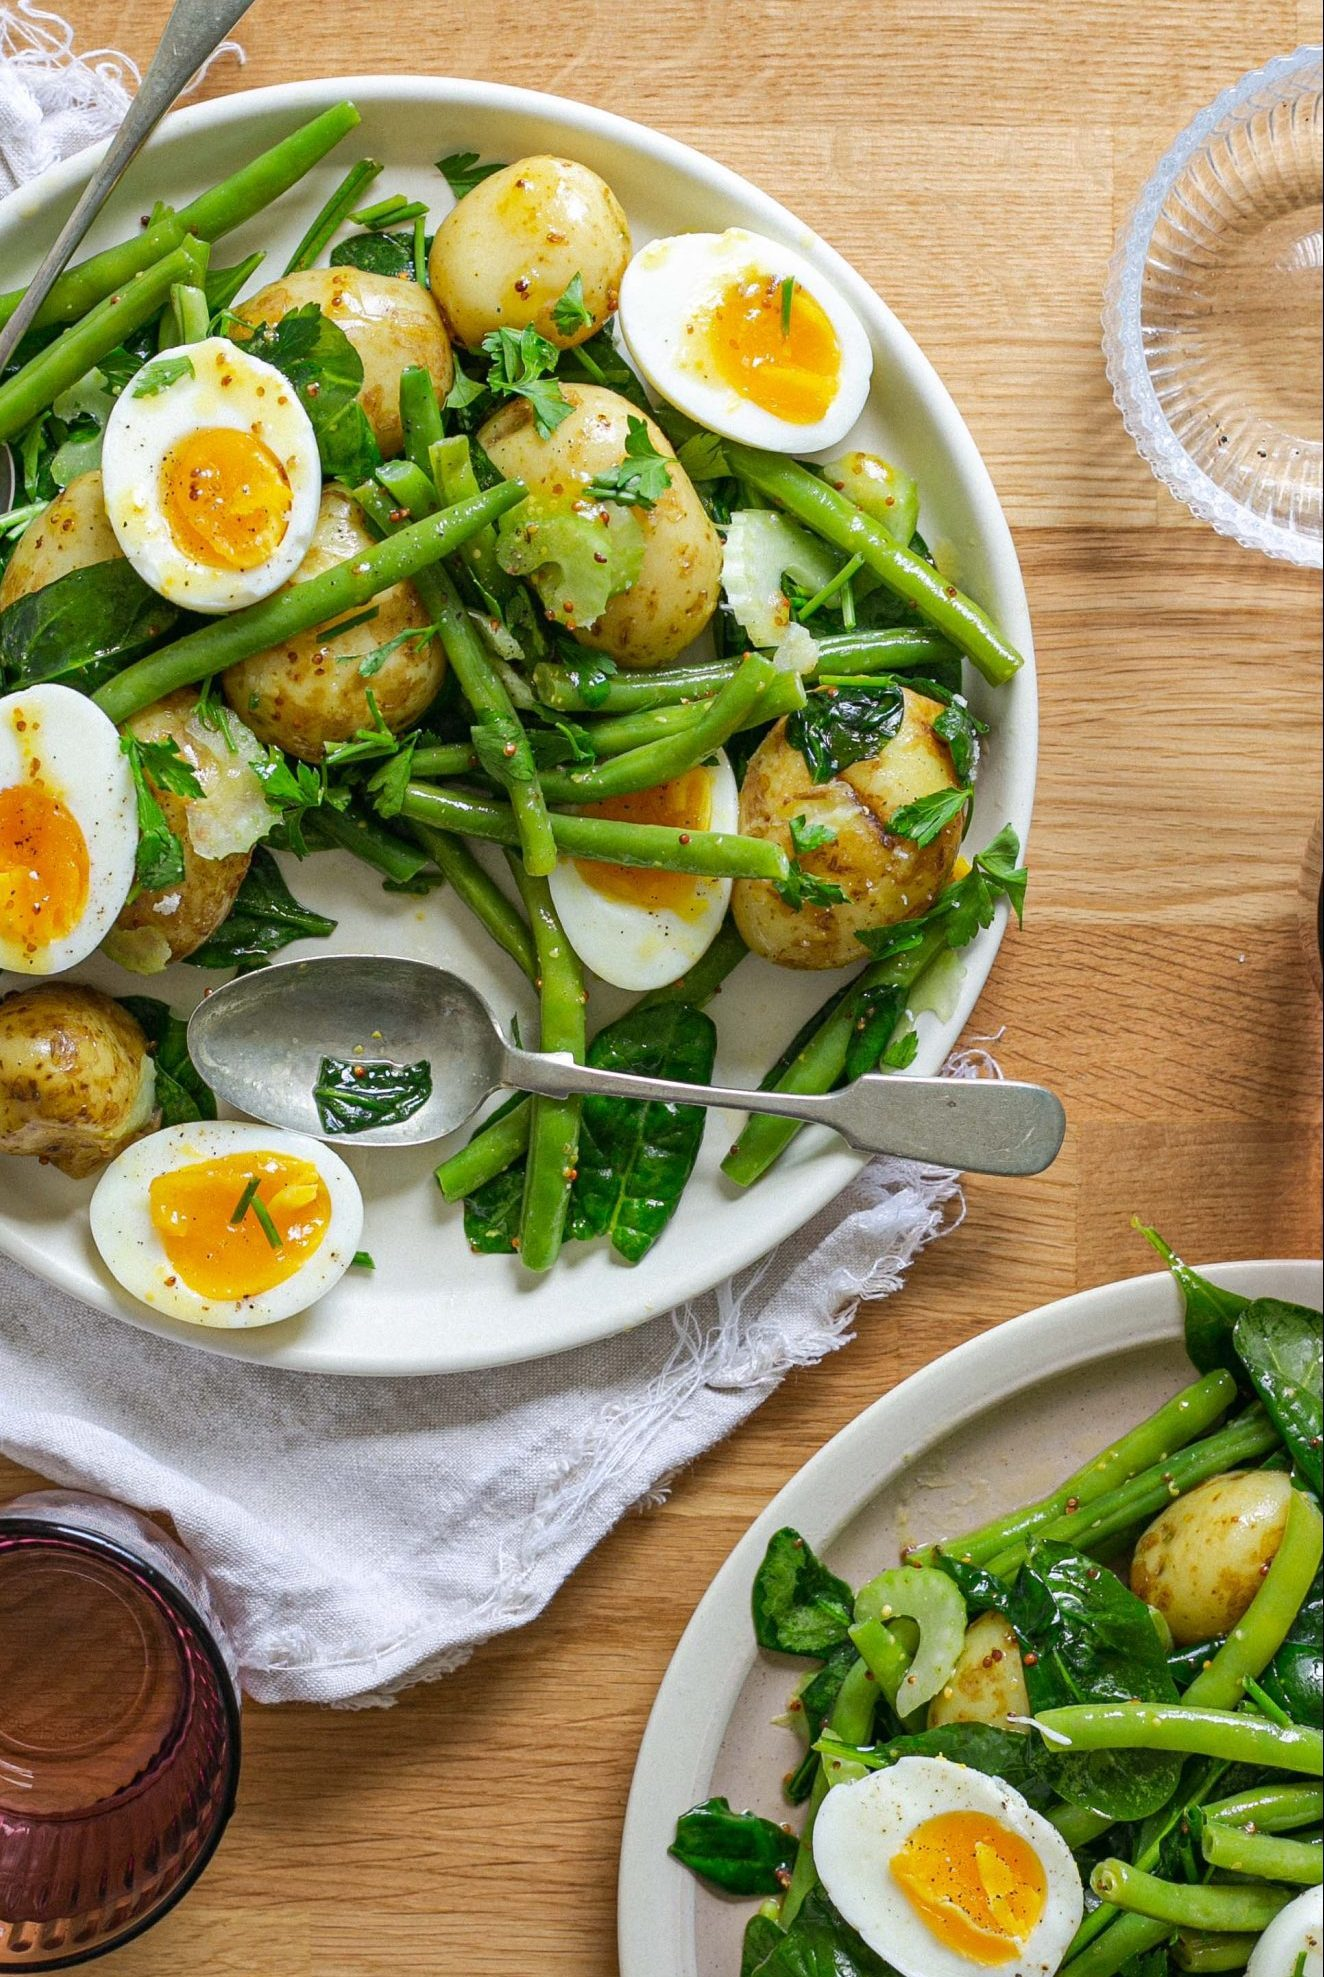 Low FODMAP salad with egg